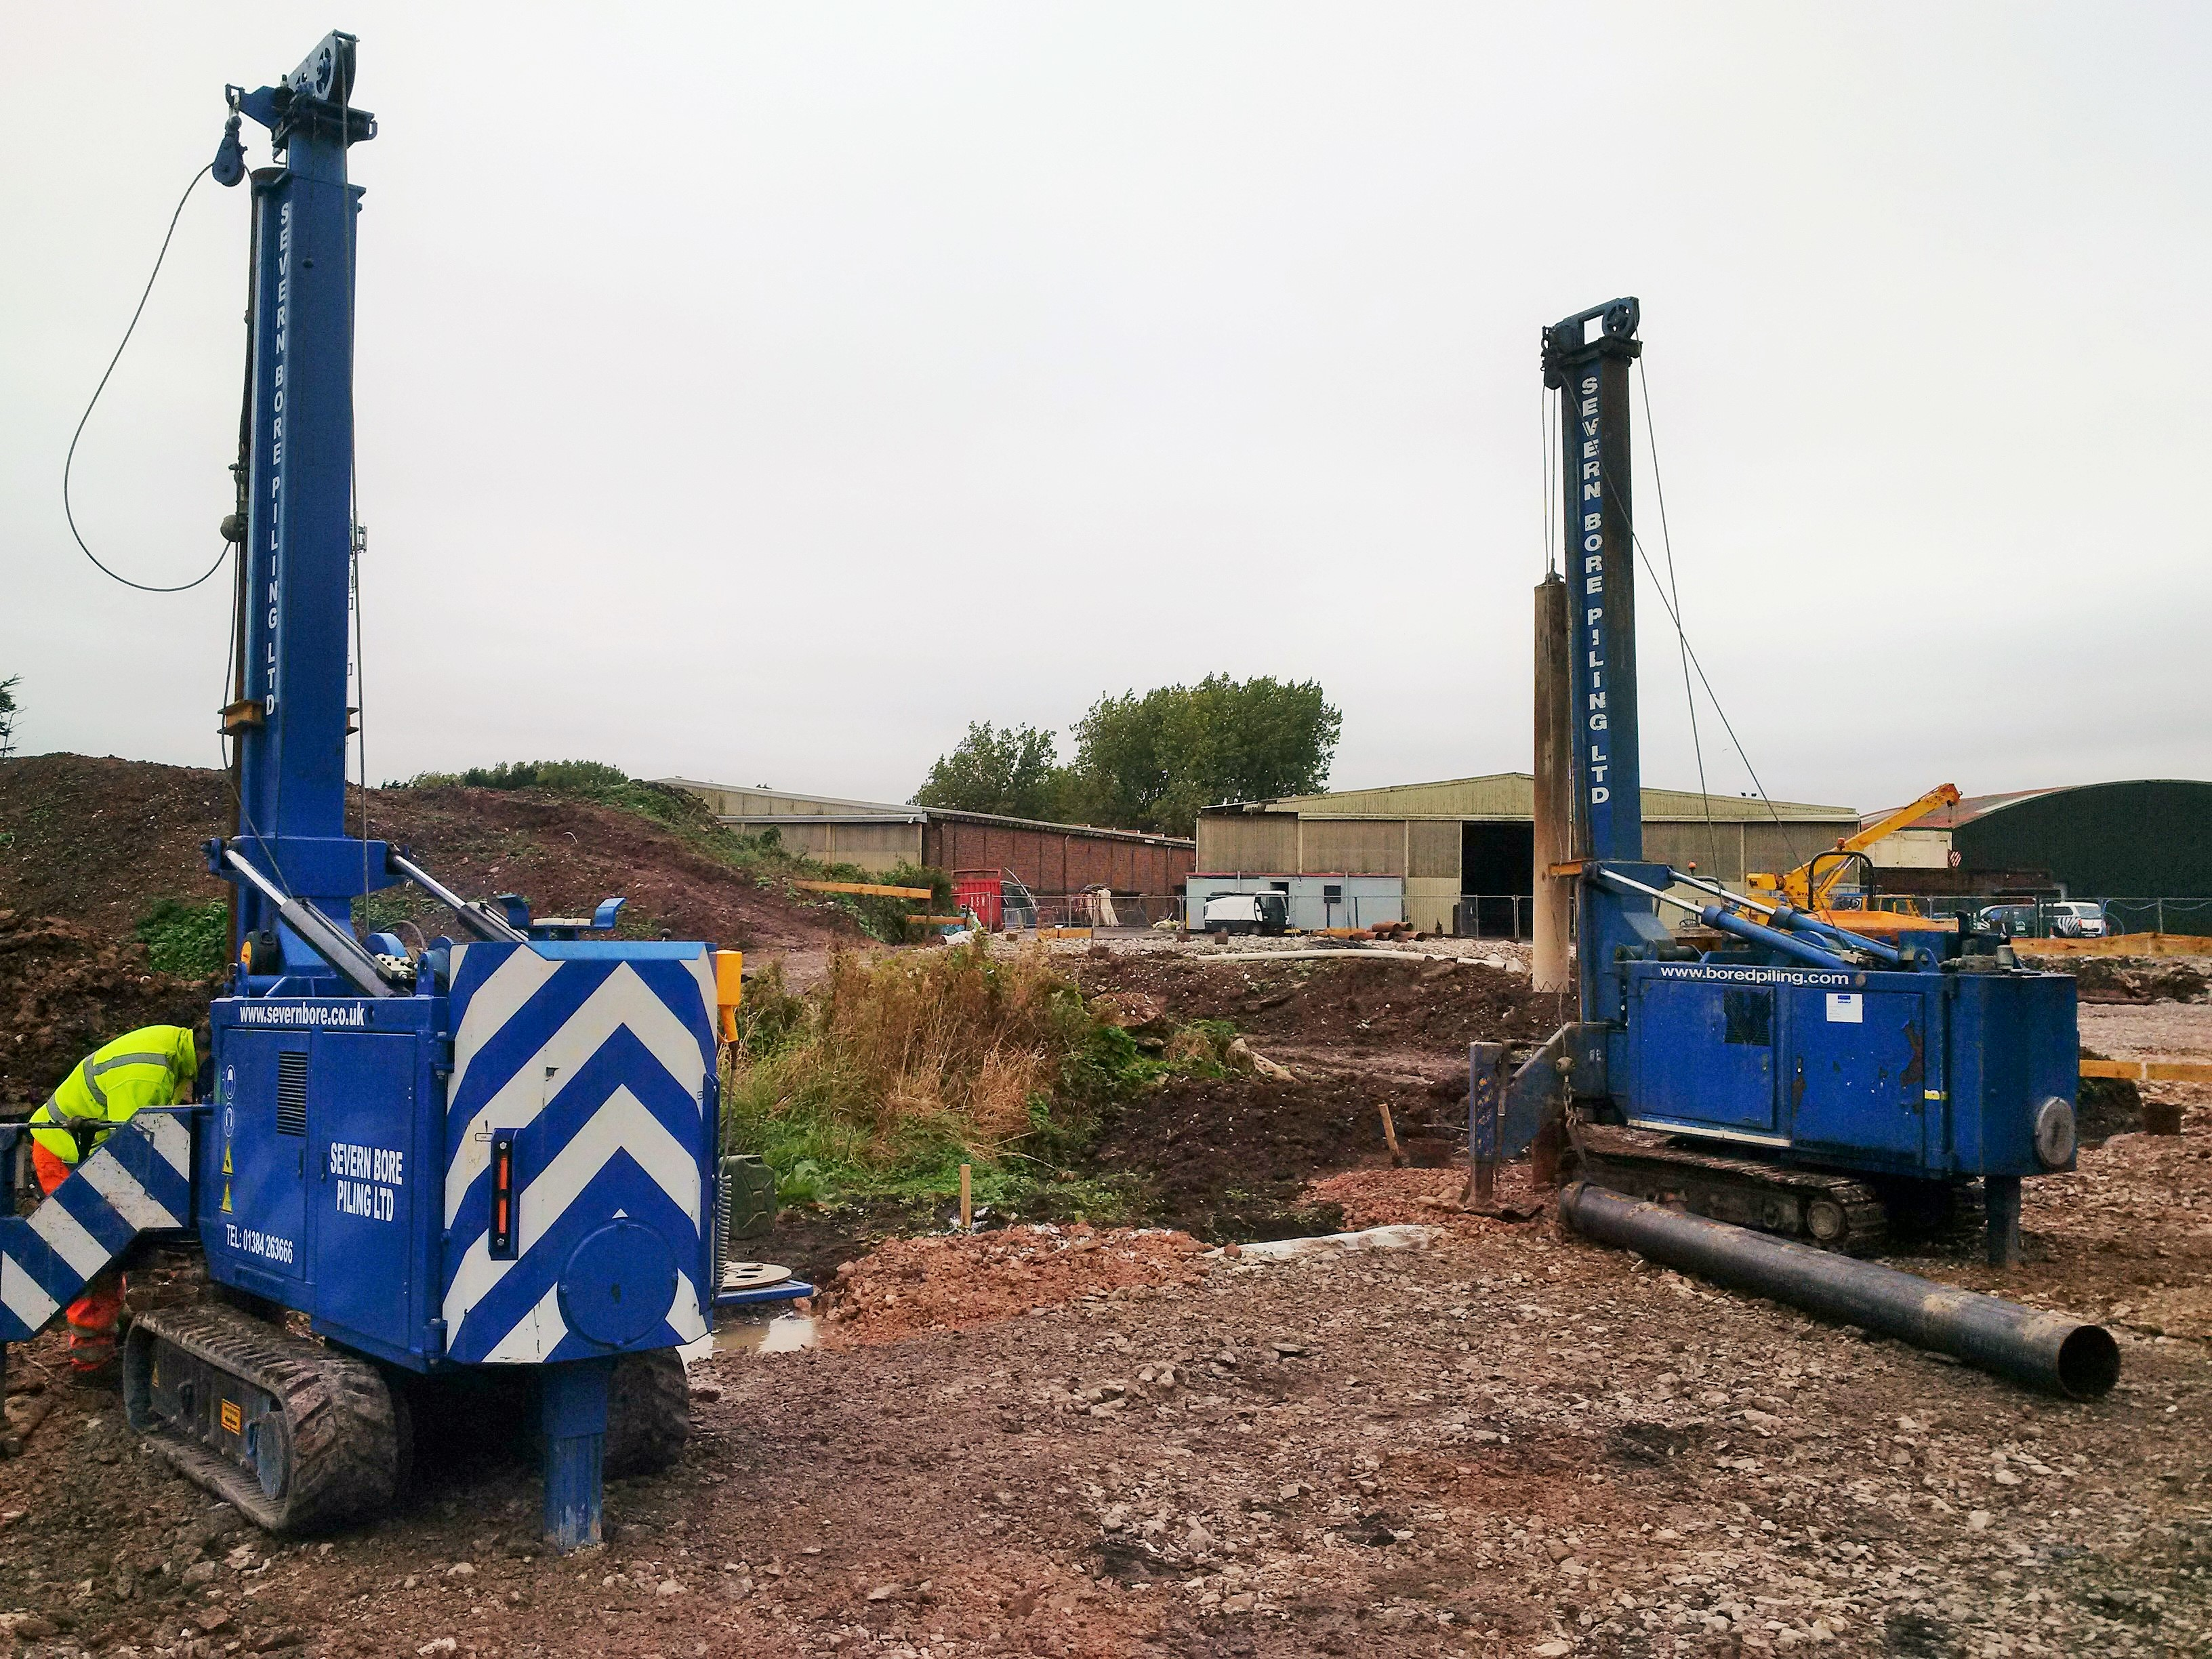 IHC Fundex Vermeer mini piling equipment